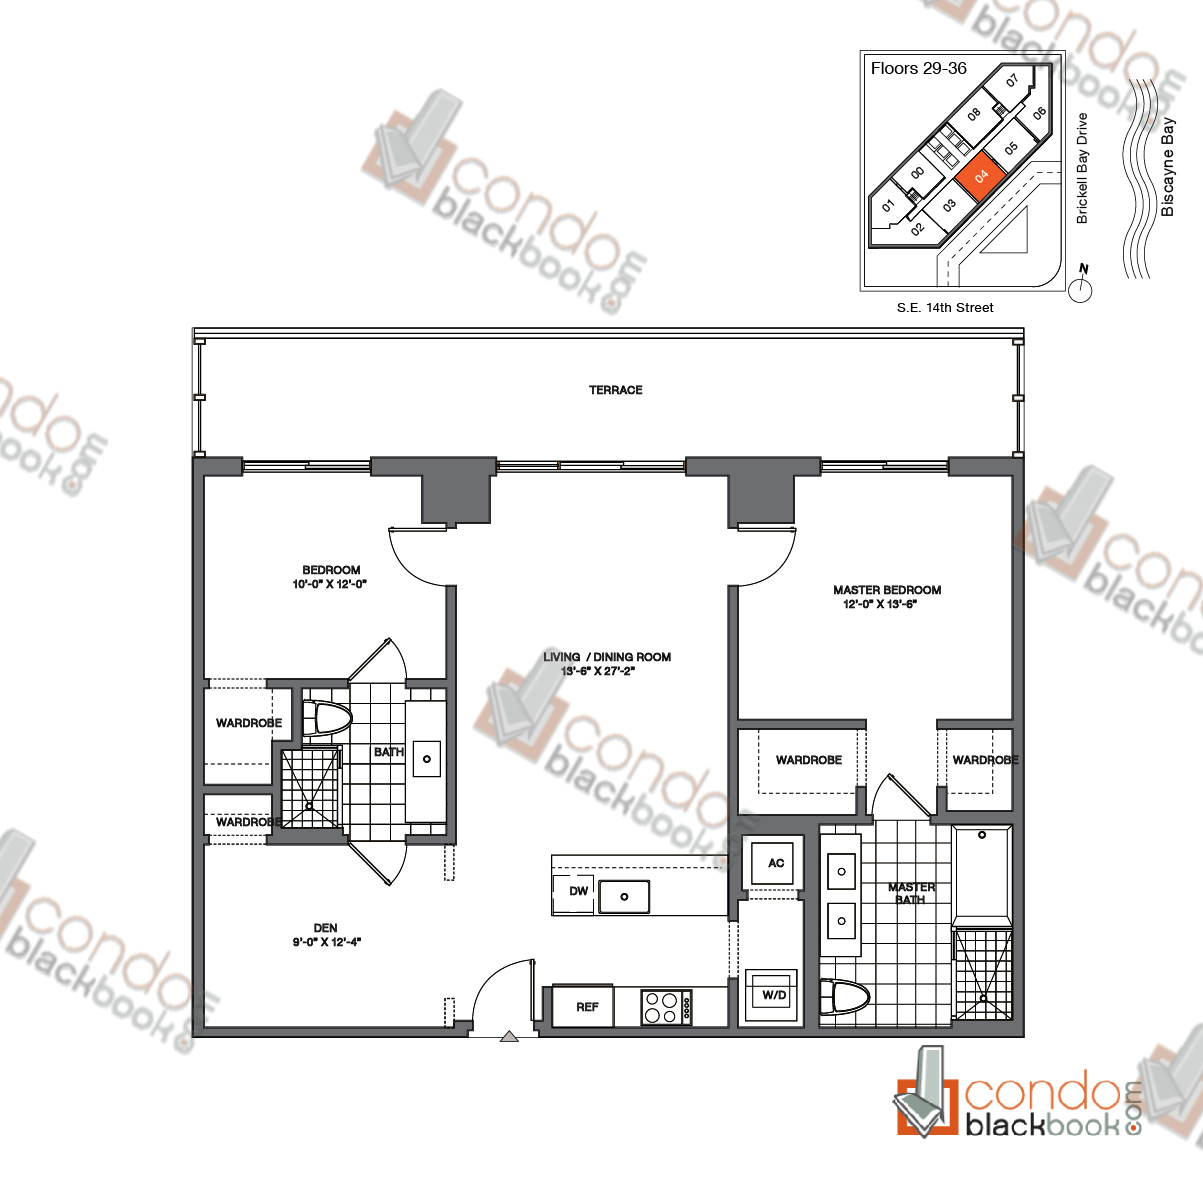 Brickell house unit 3104 condo for sale in brickell for Miami house plans